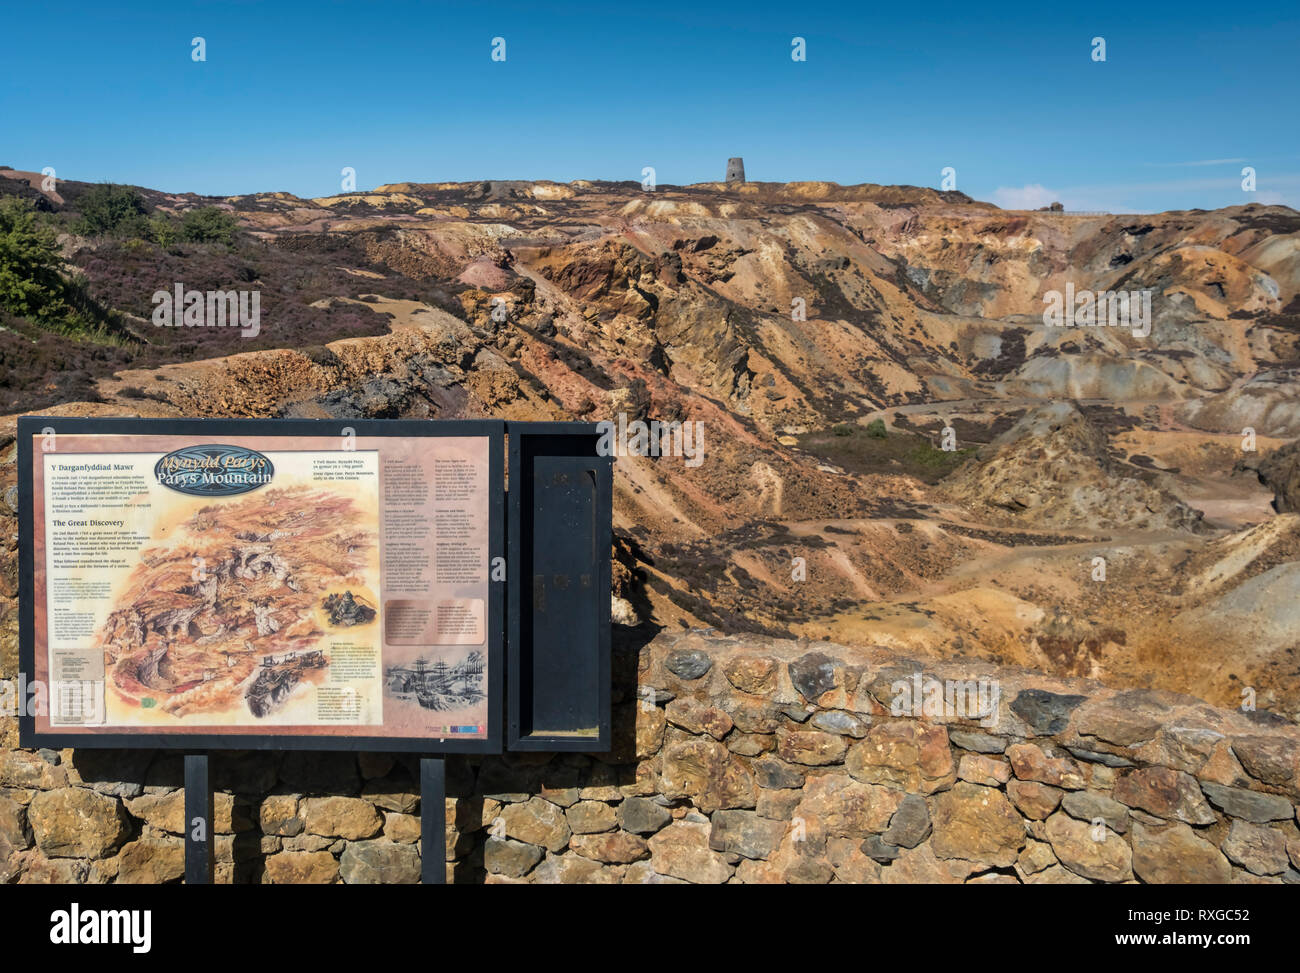 Information Board at the viewpoint, Parys Mountain abandoned Copper MIne, near Amlwch, Anglesey, North Wales, UK - Stock Image